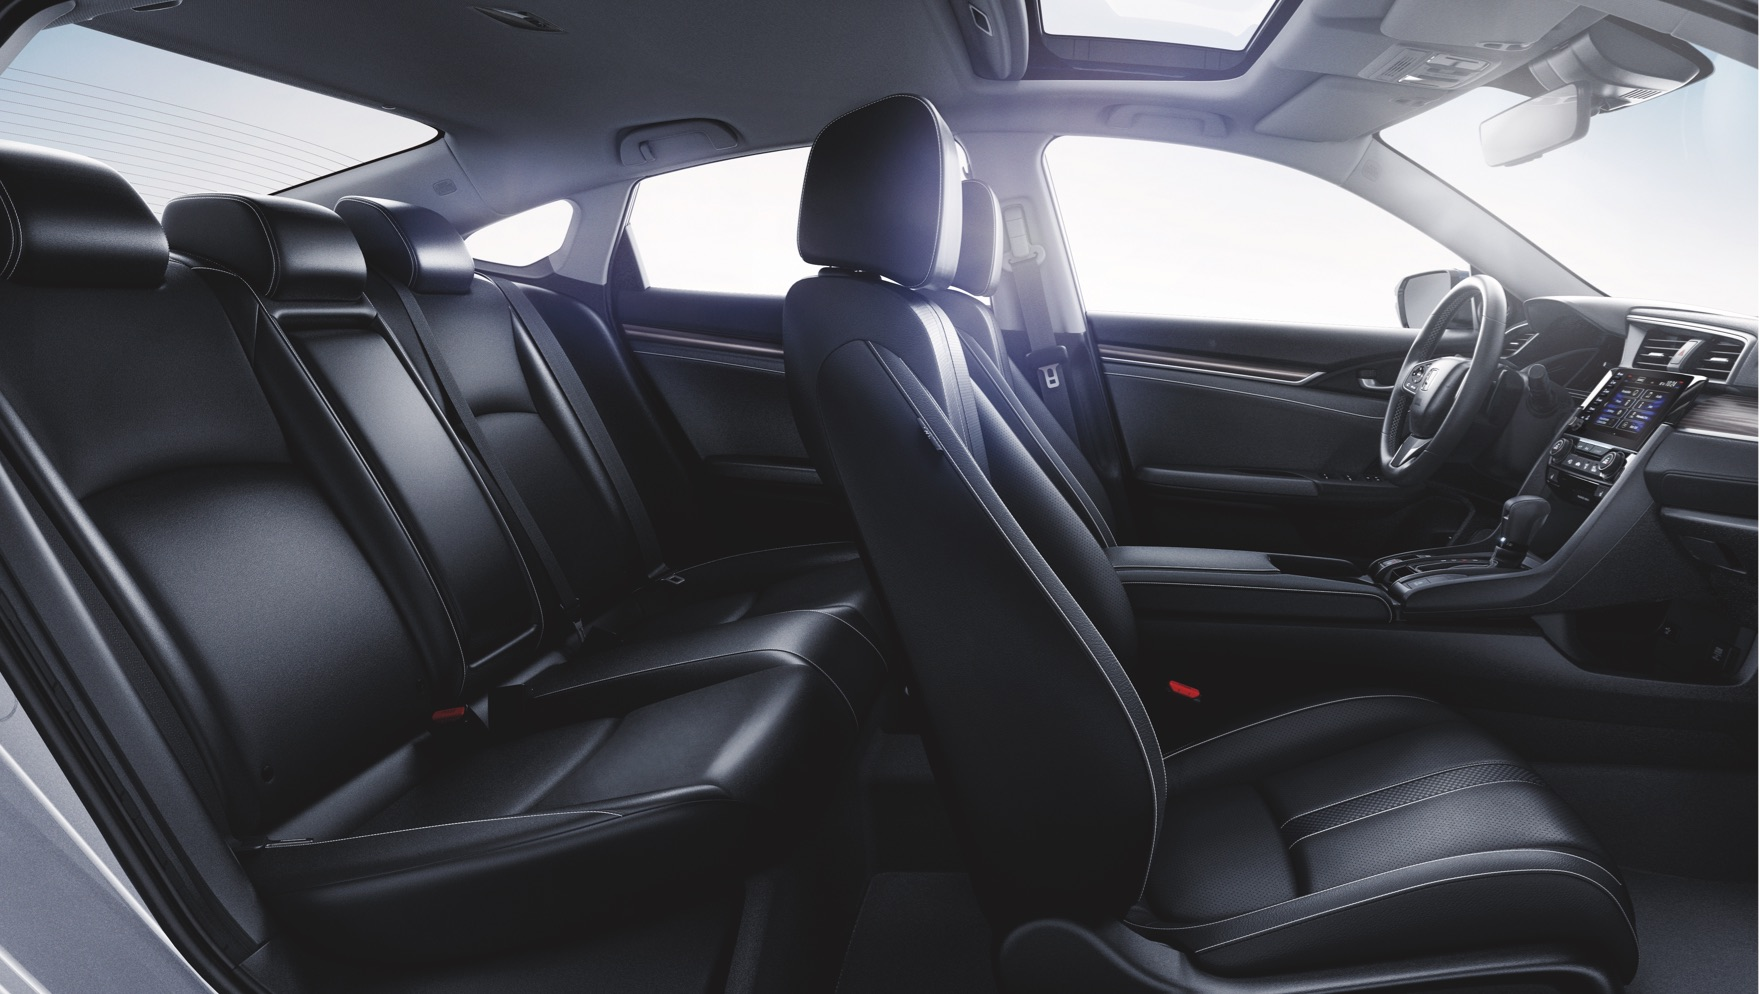 Interior passenger-side view of the front and back seats in the 2020 Honda Civic Touring Sedan with Black Leather.